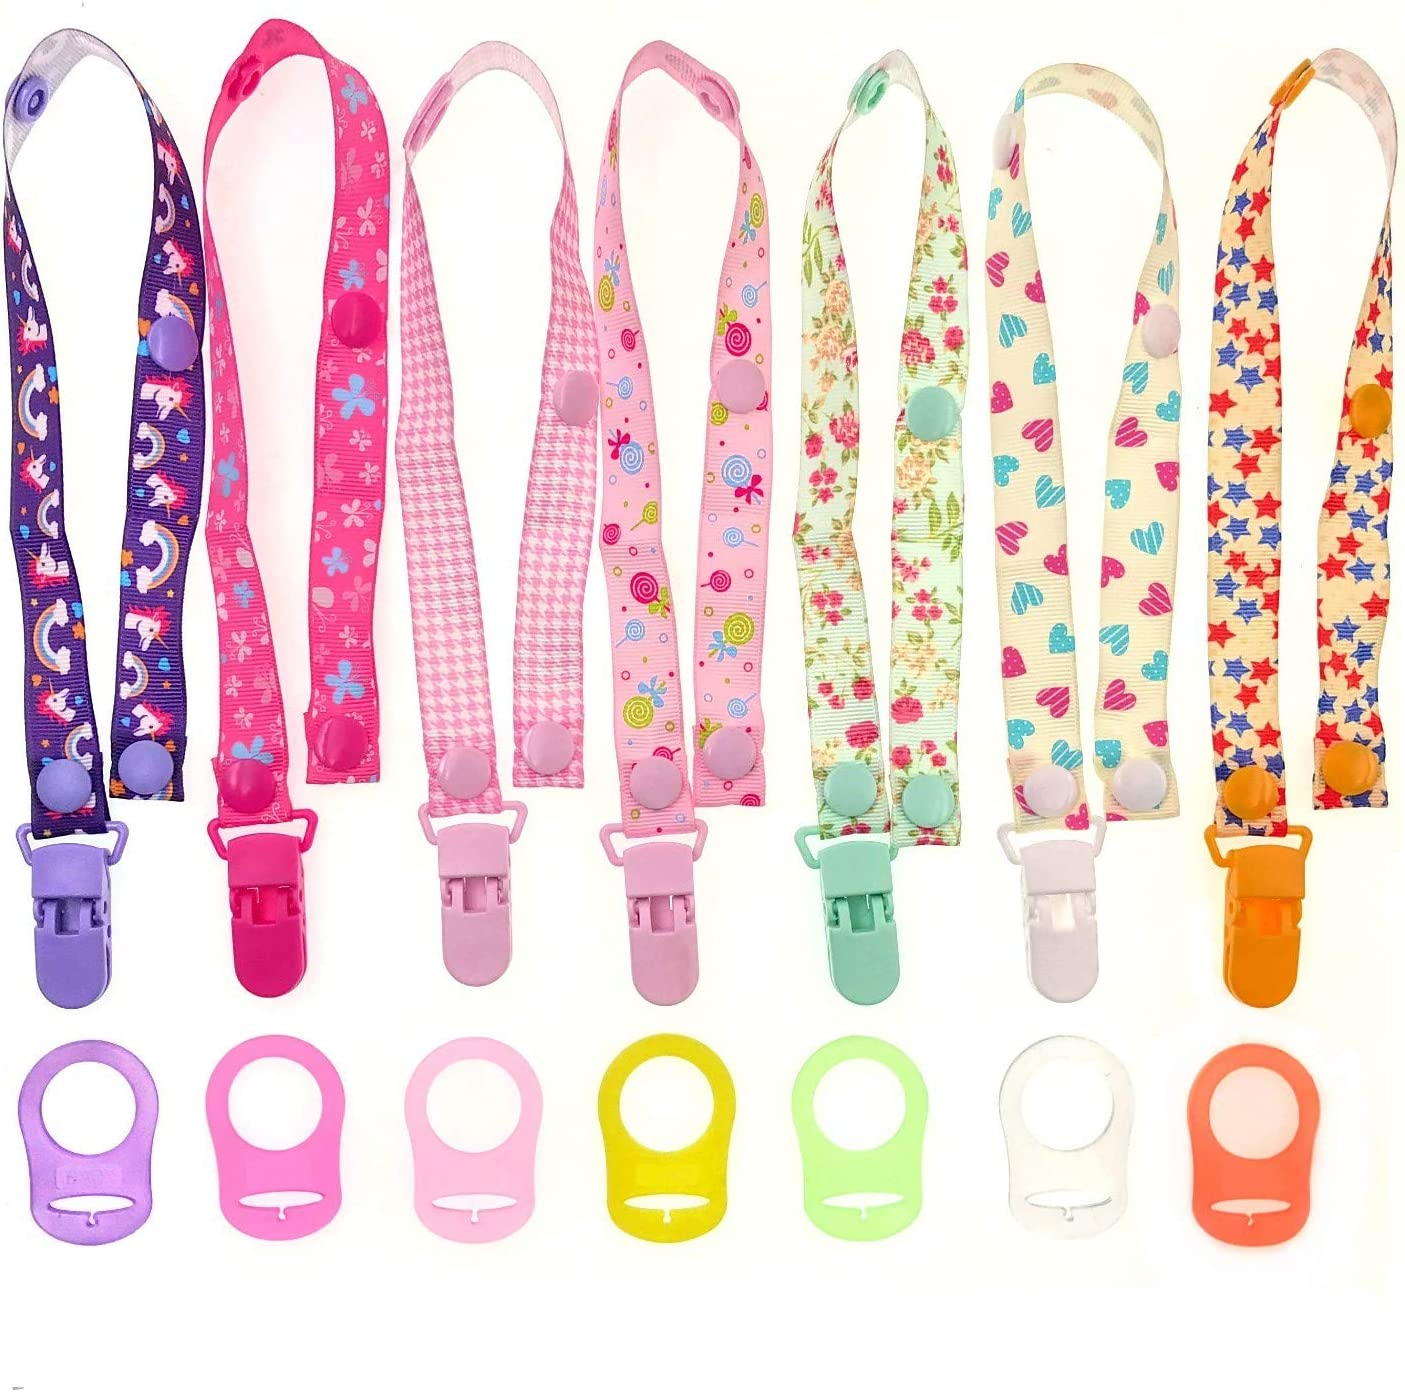 7 x Pacifier Clip Dummy Holder Straps for Girls Suitable for Baby mam soothers JZK 7 x Multicolor Silicone Baby Dummy Clip Ring for Girls